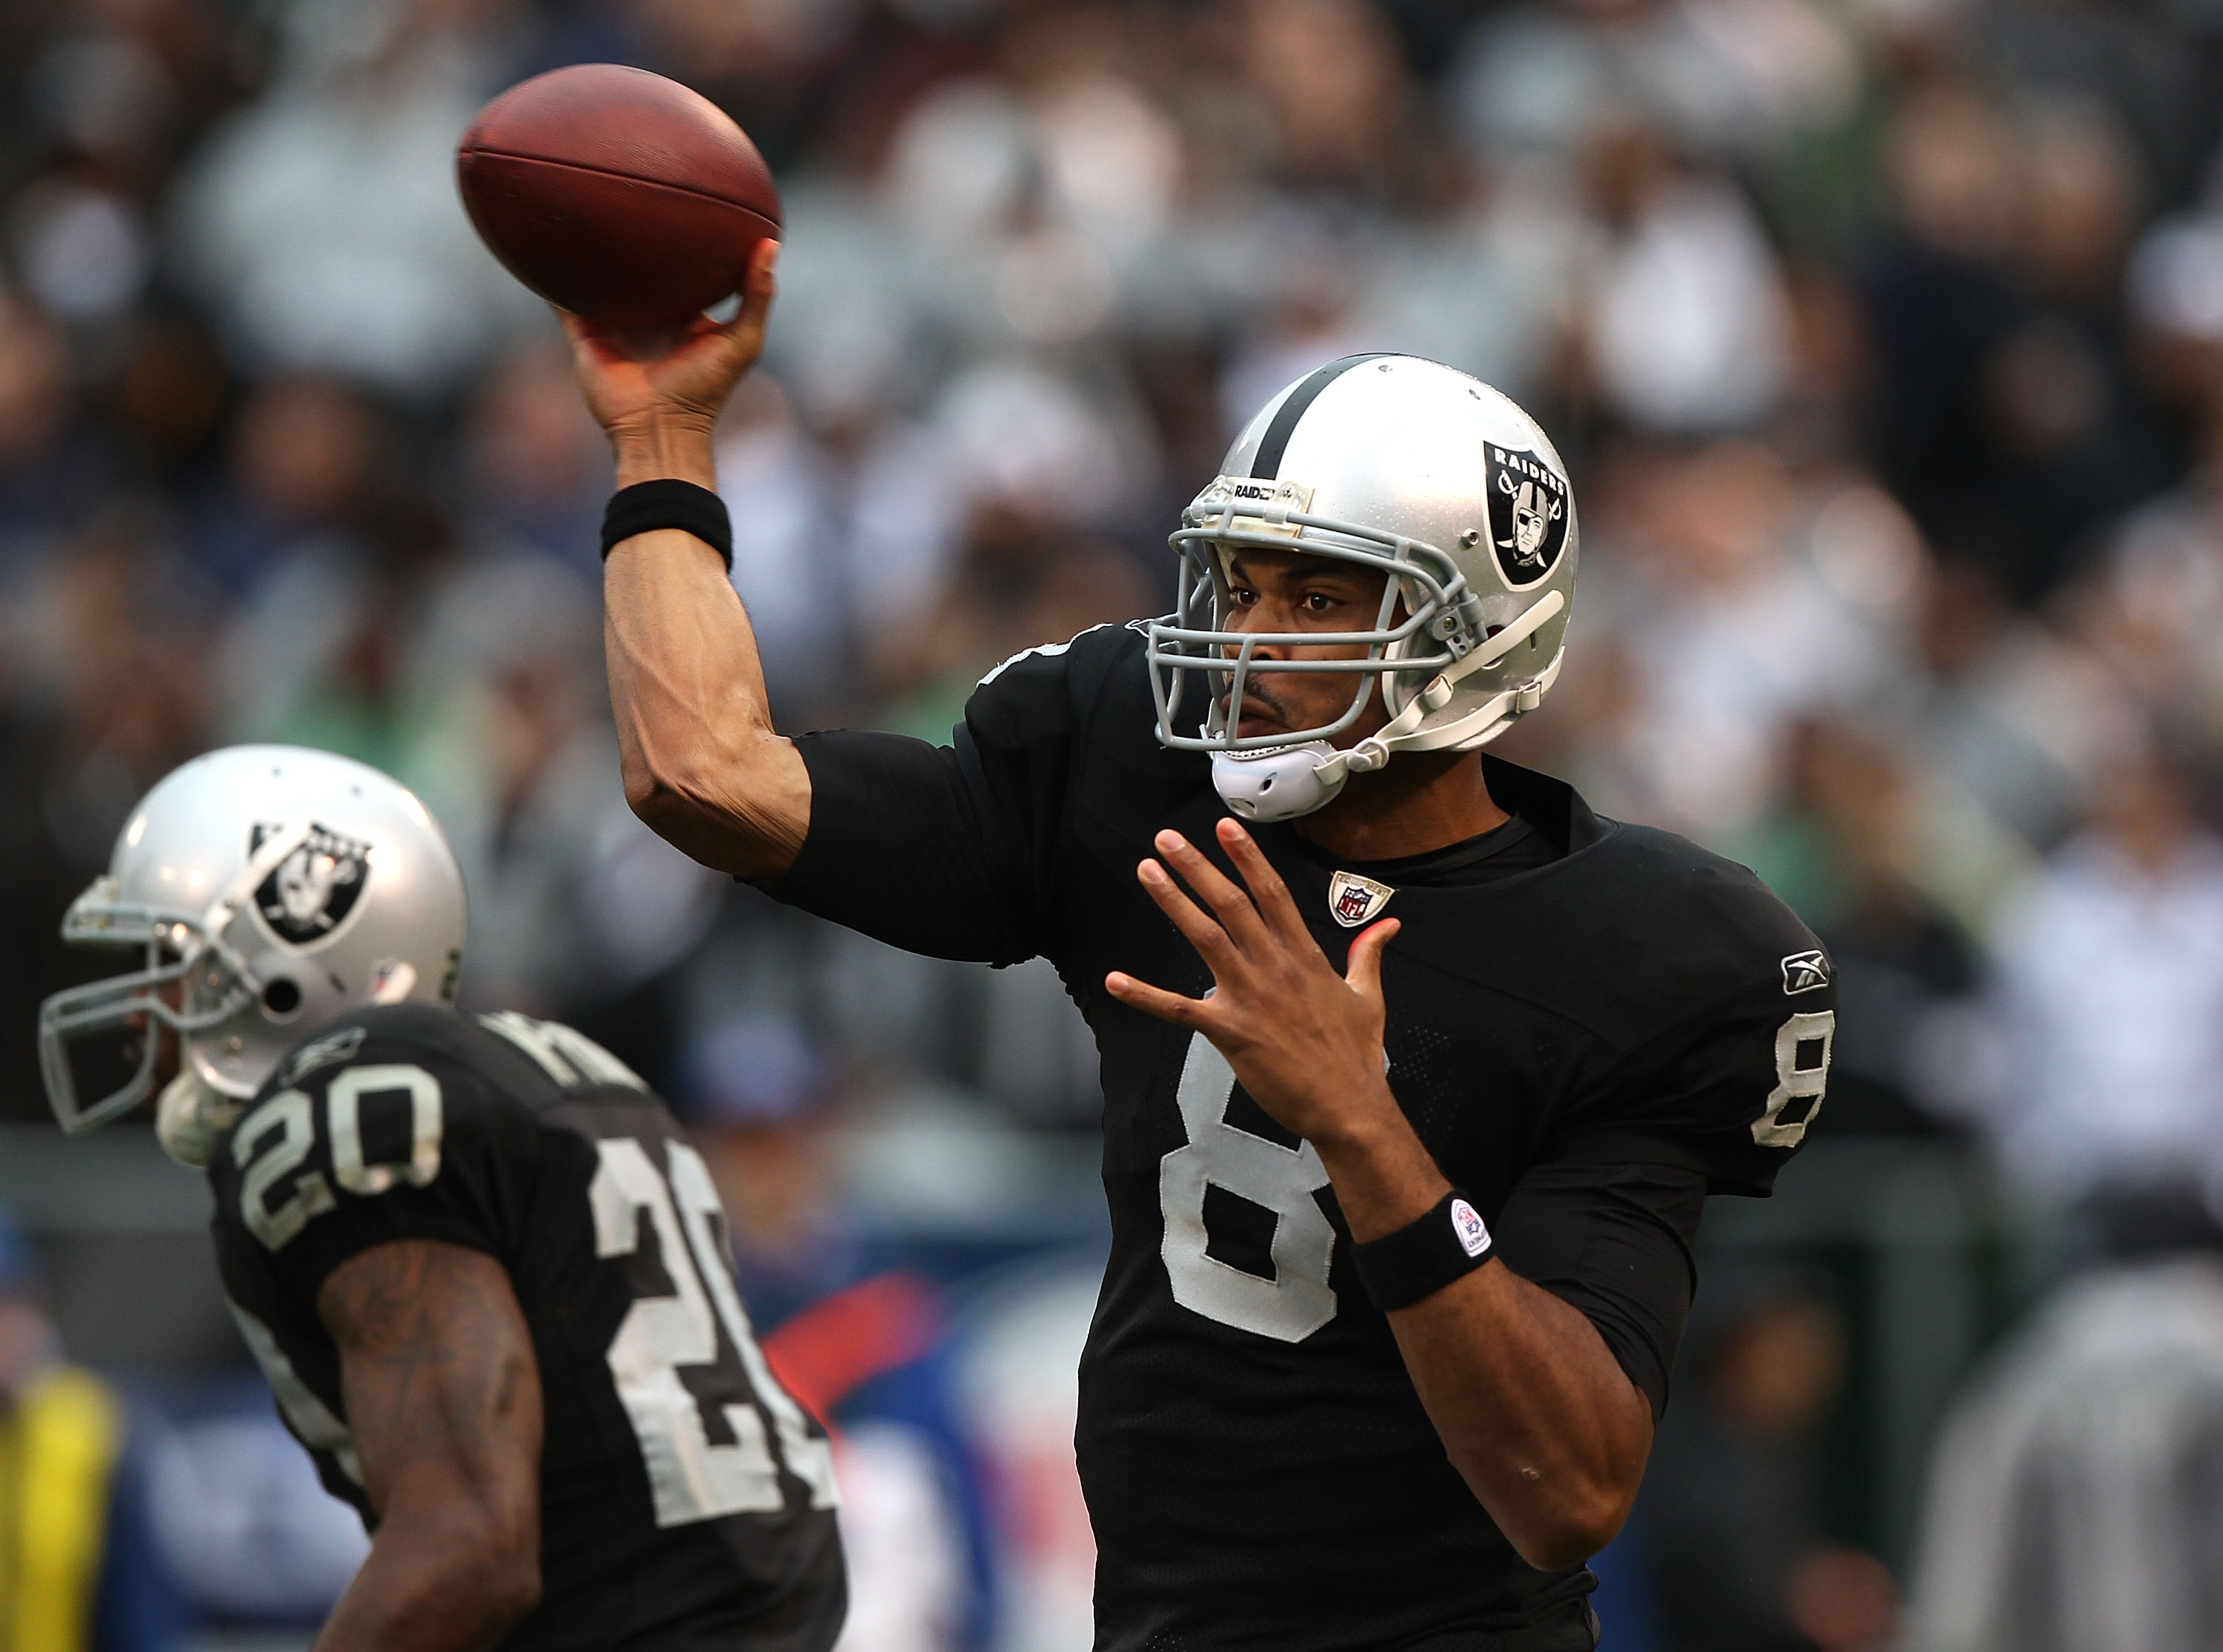 OAKLAND, CA - NOVEMBER 07:  Jason Campbell #8 of the Oakland Raiders passes against the Kansas City Chiefs during an NFL game at Oakland-Alameda County Coliseum on November 7, 2010 in Oakland, California.  (Photo by Jed Jacobsohn/Getty Images)